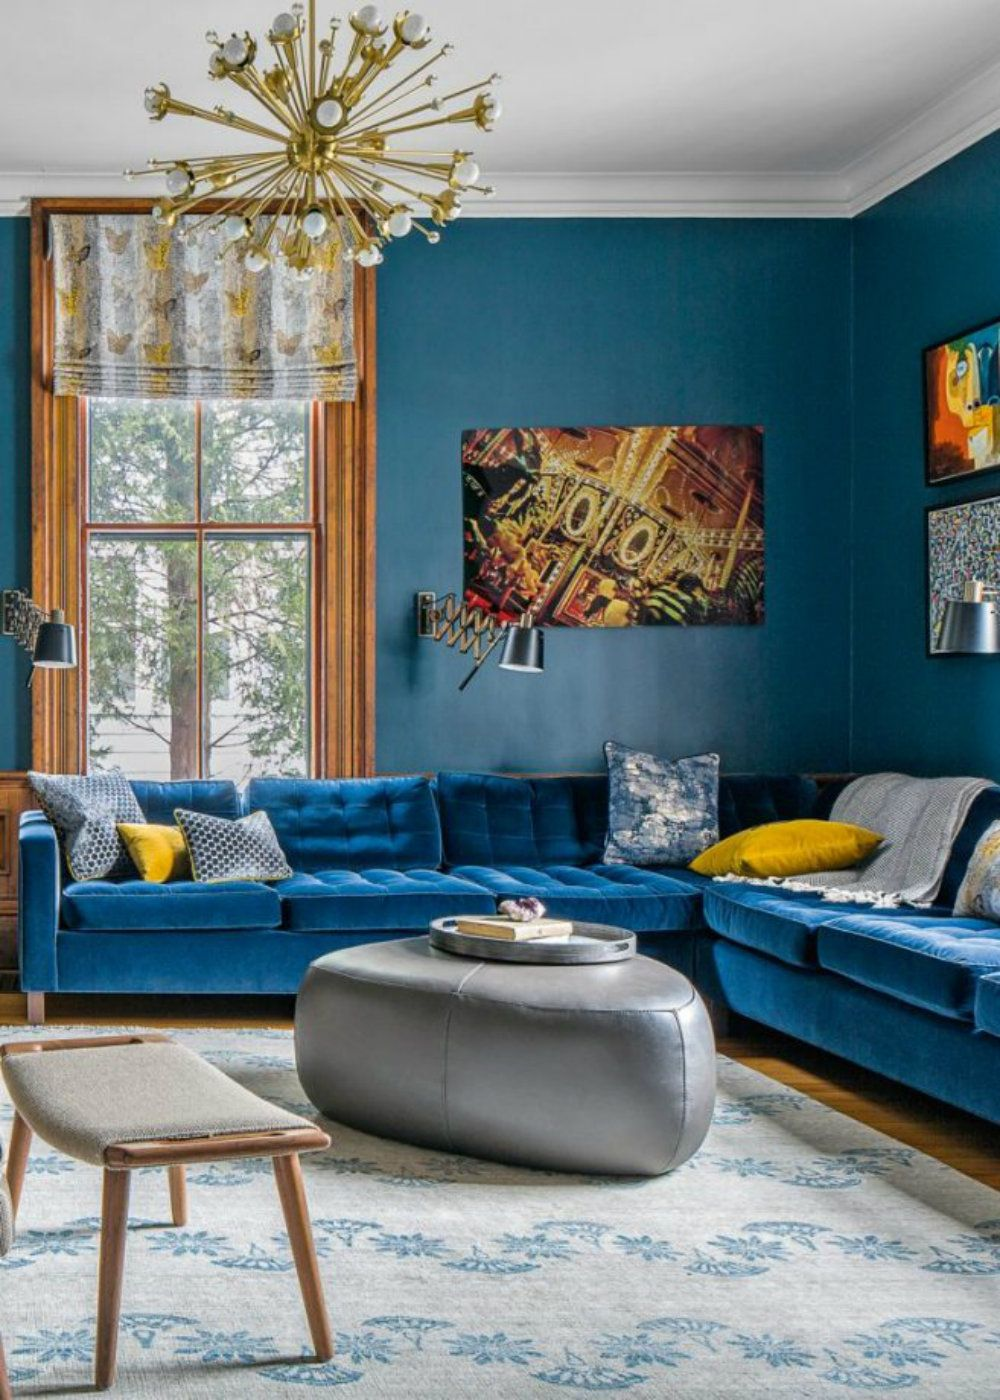 18delihgtfull_living-room_-mid-century-blue-modern-design-with-yellow-and-gold.jpg